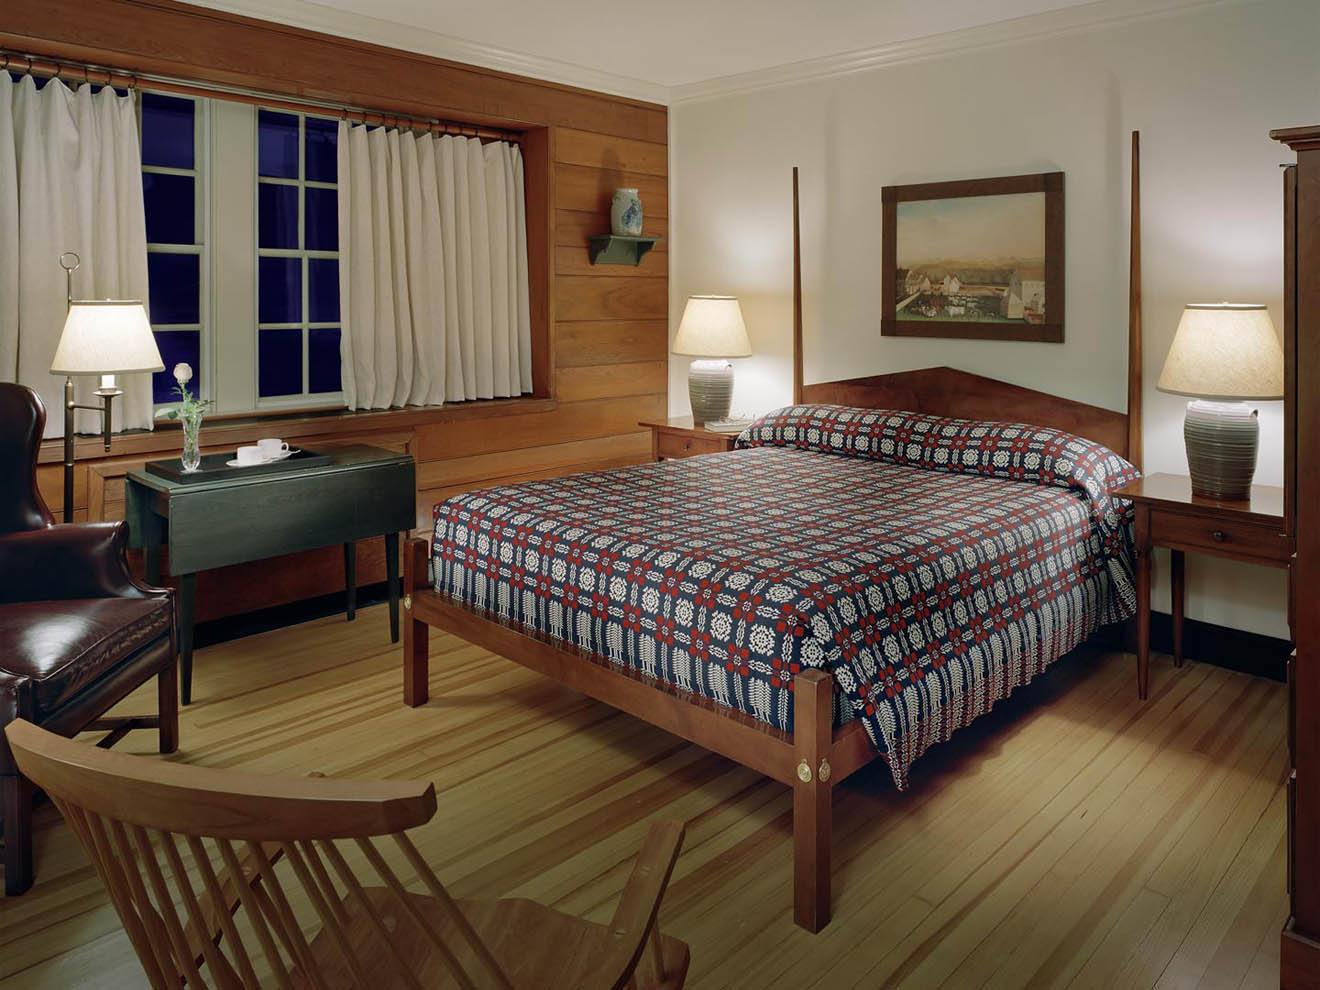 guestroom with wood floors and paneling